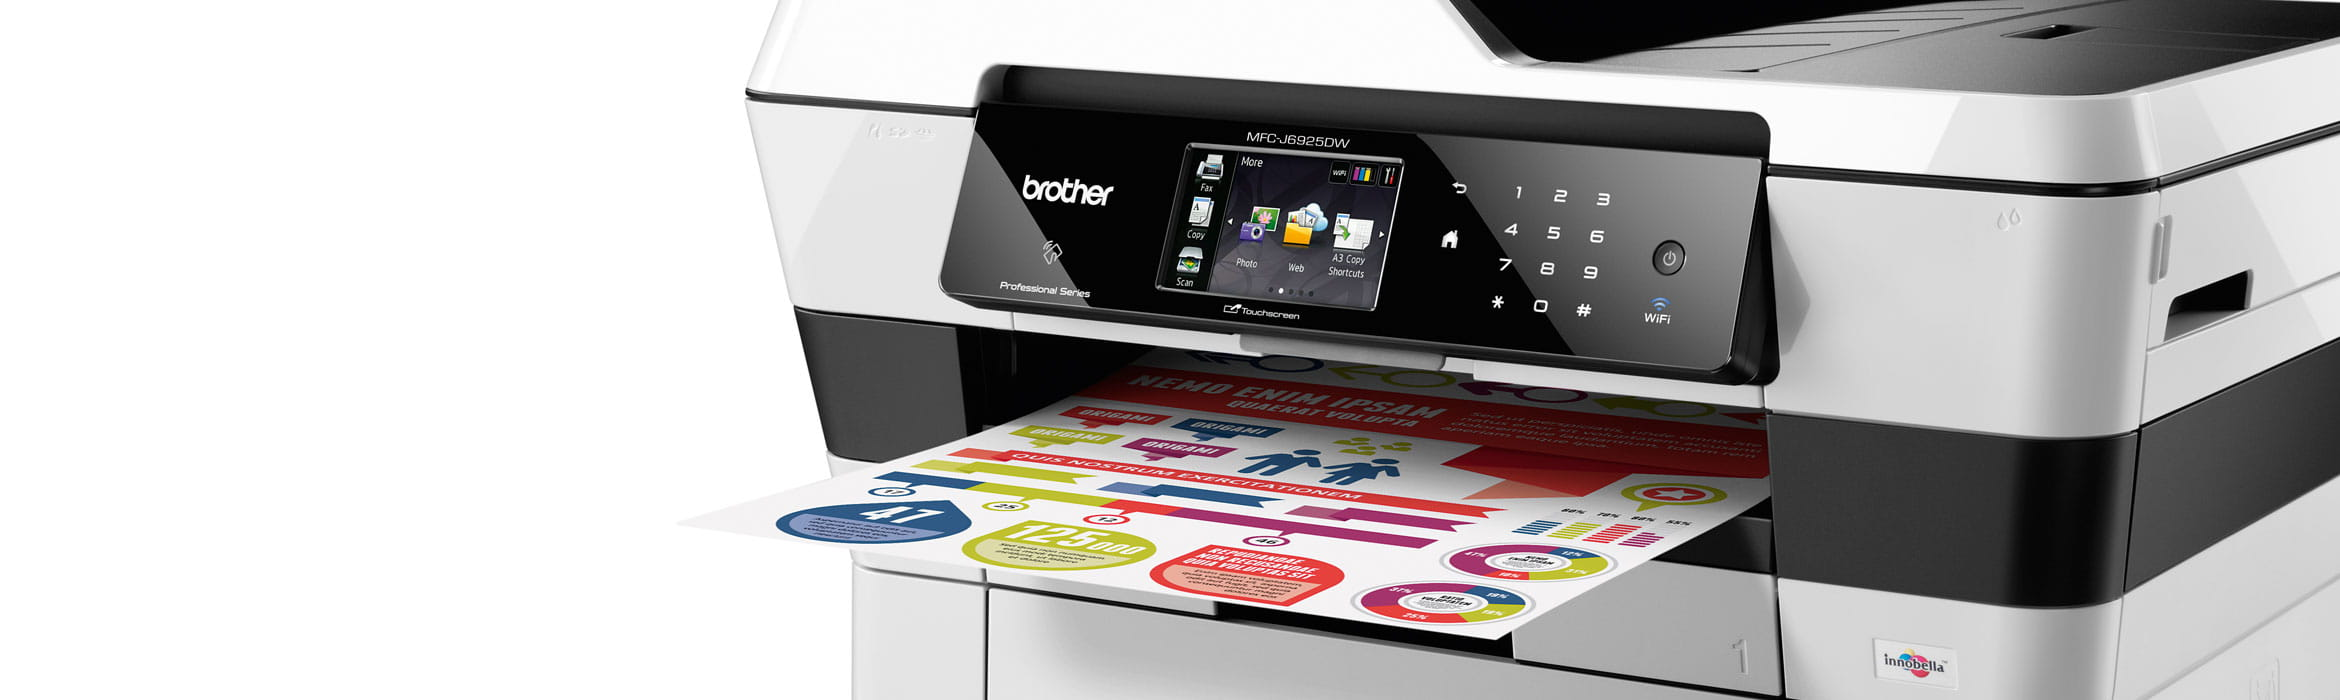 brother printers a3 inkjet MFC-J6925DW